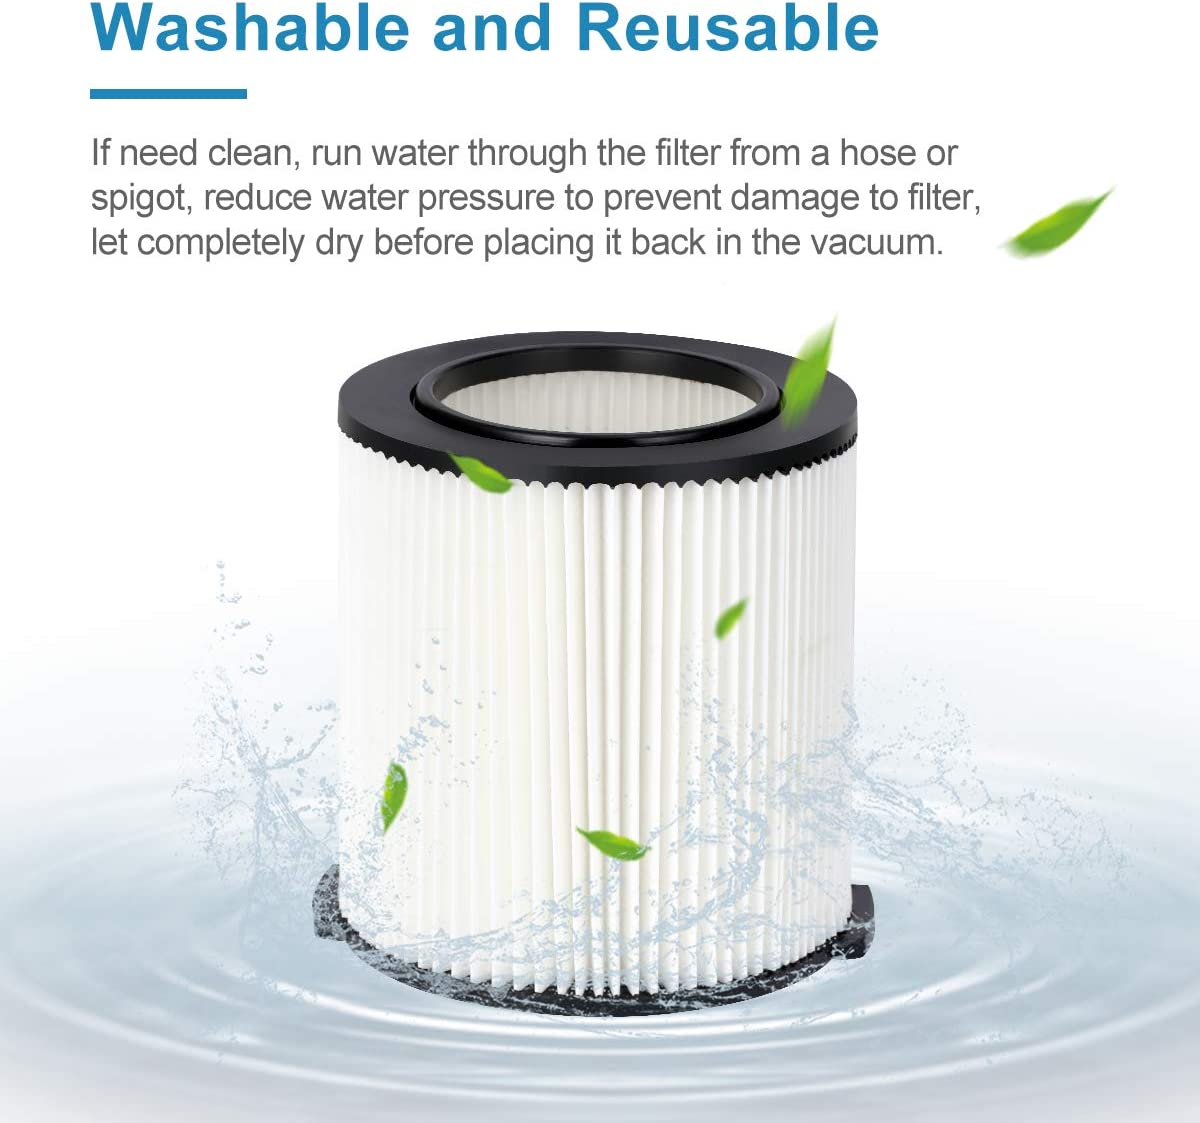 LANMU Replacement VF4000 Filter Compatible with Ridgid 5 to 20 Gal Wet//Dry Vac Husky 6 to 9 Gal Craftsman 17816 Vacs